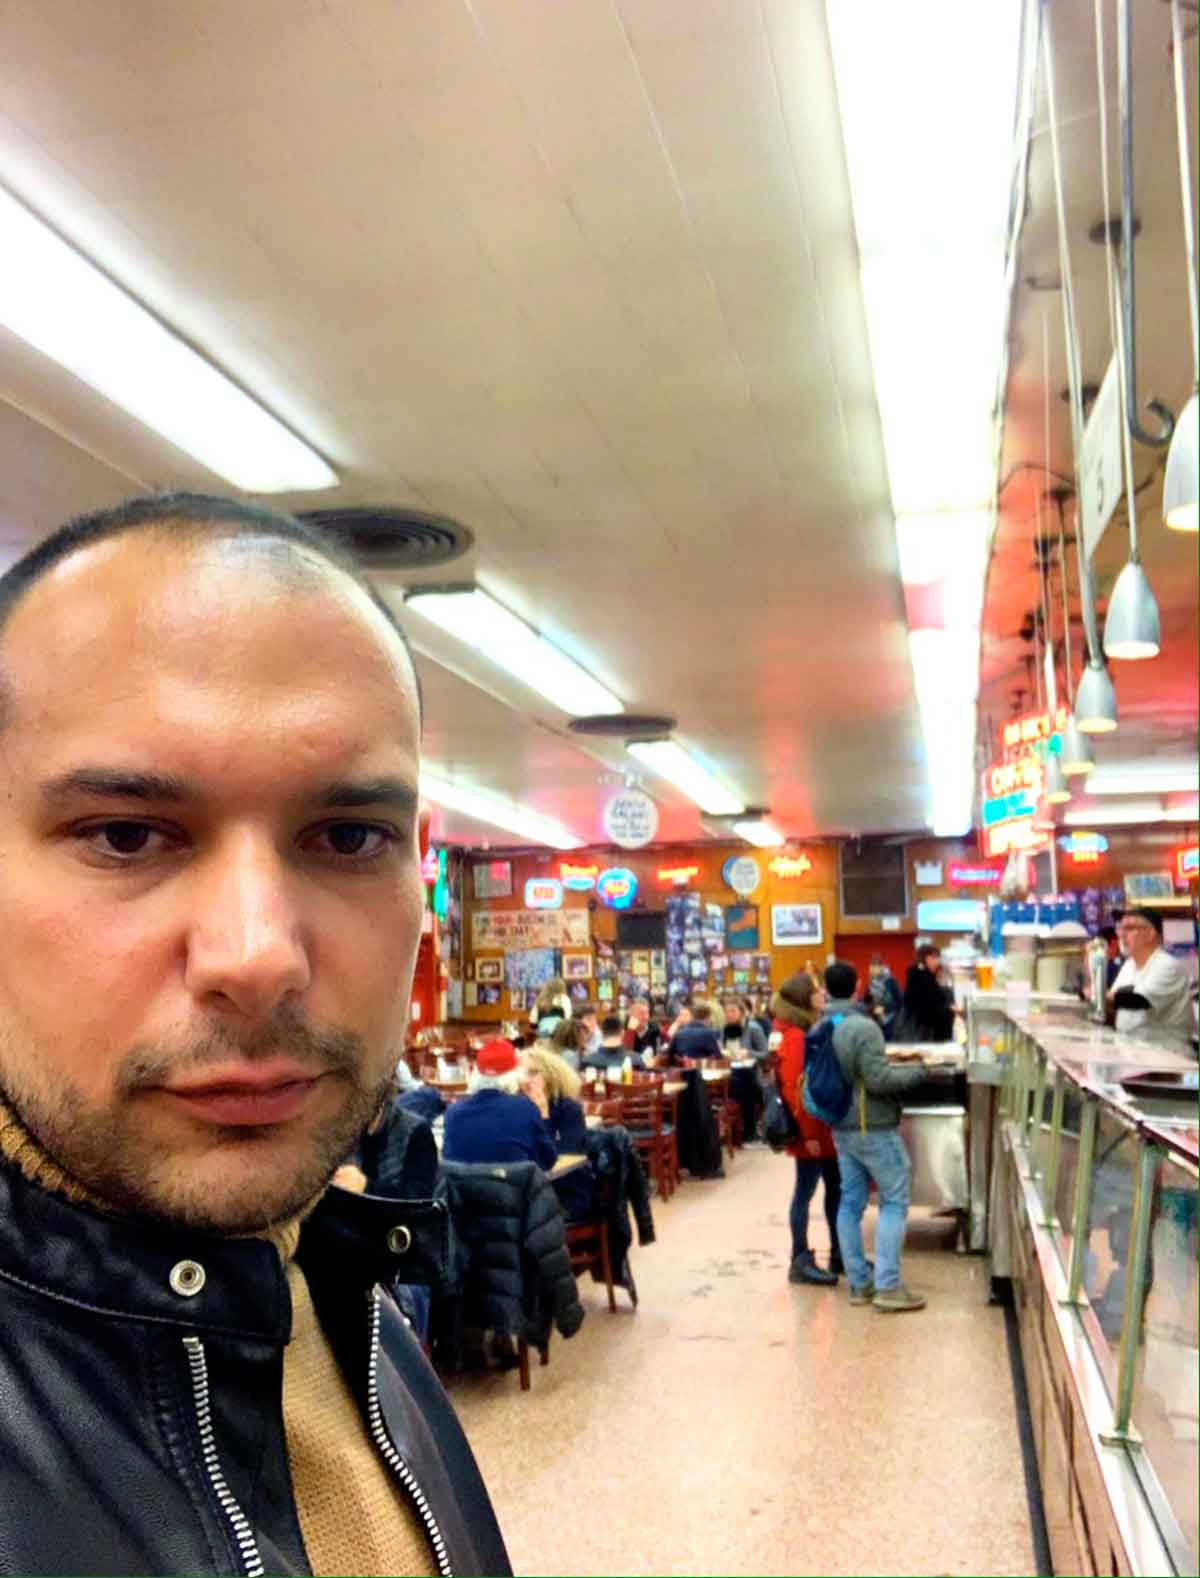 Katz's Delicatessen New York